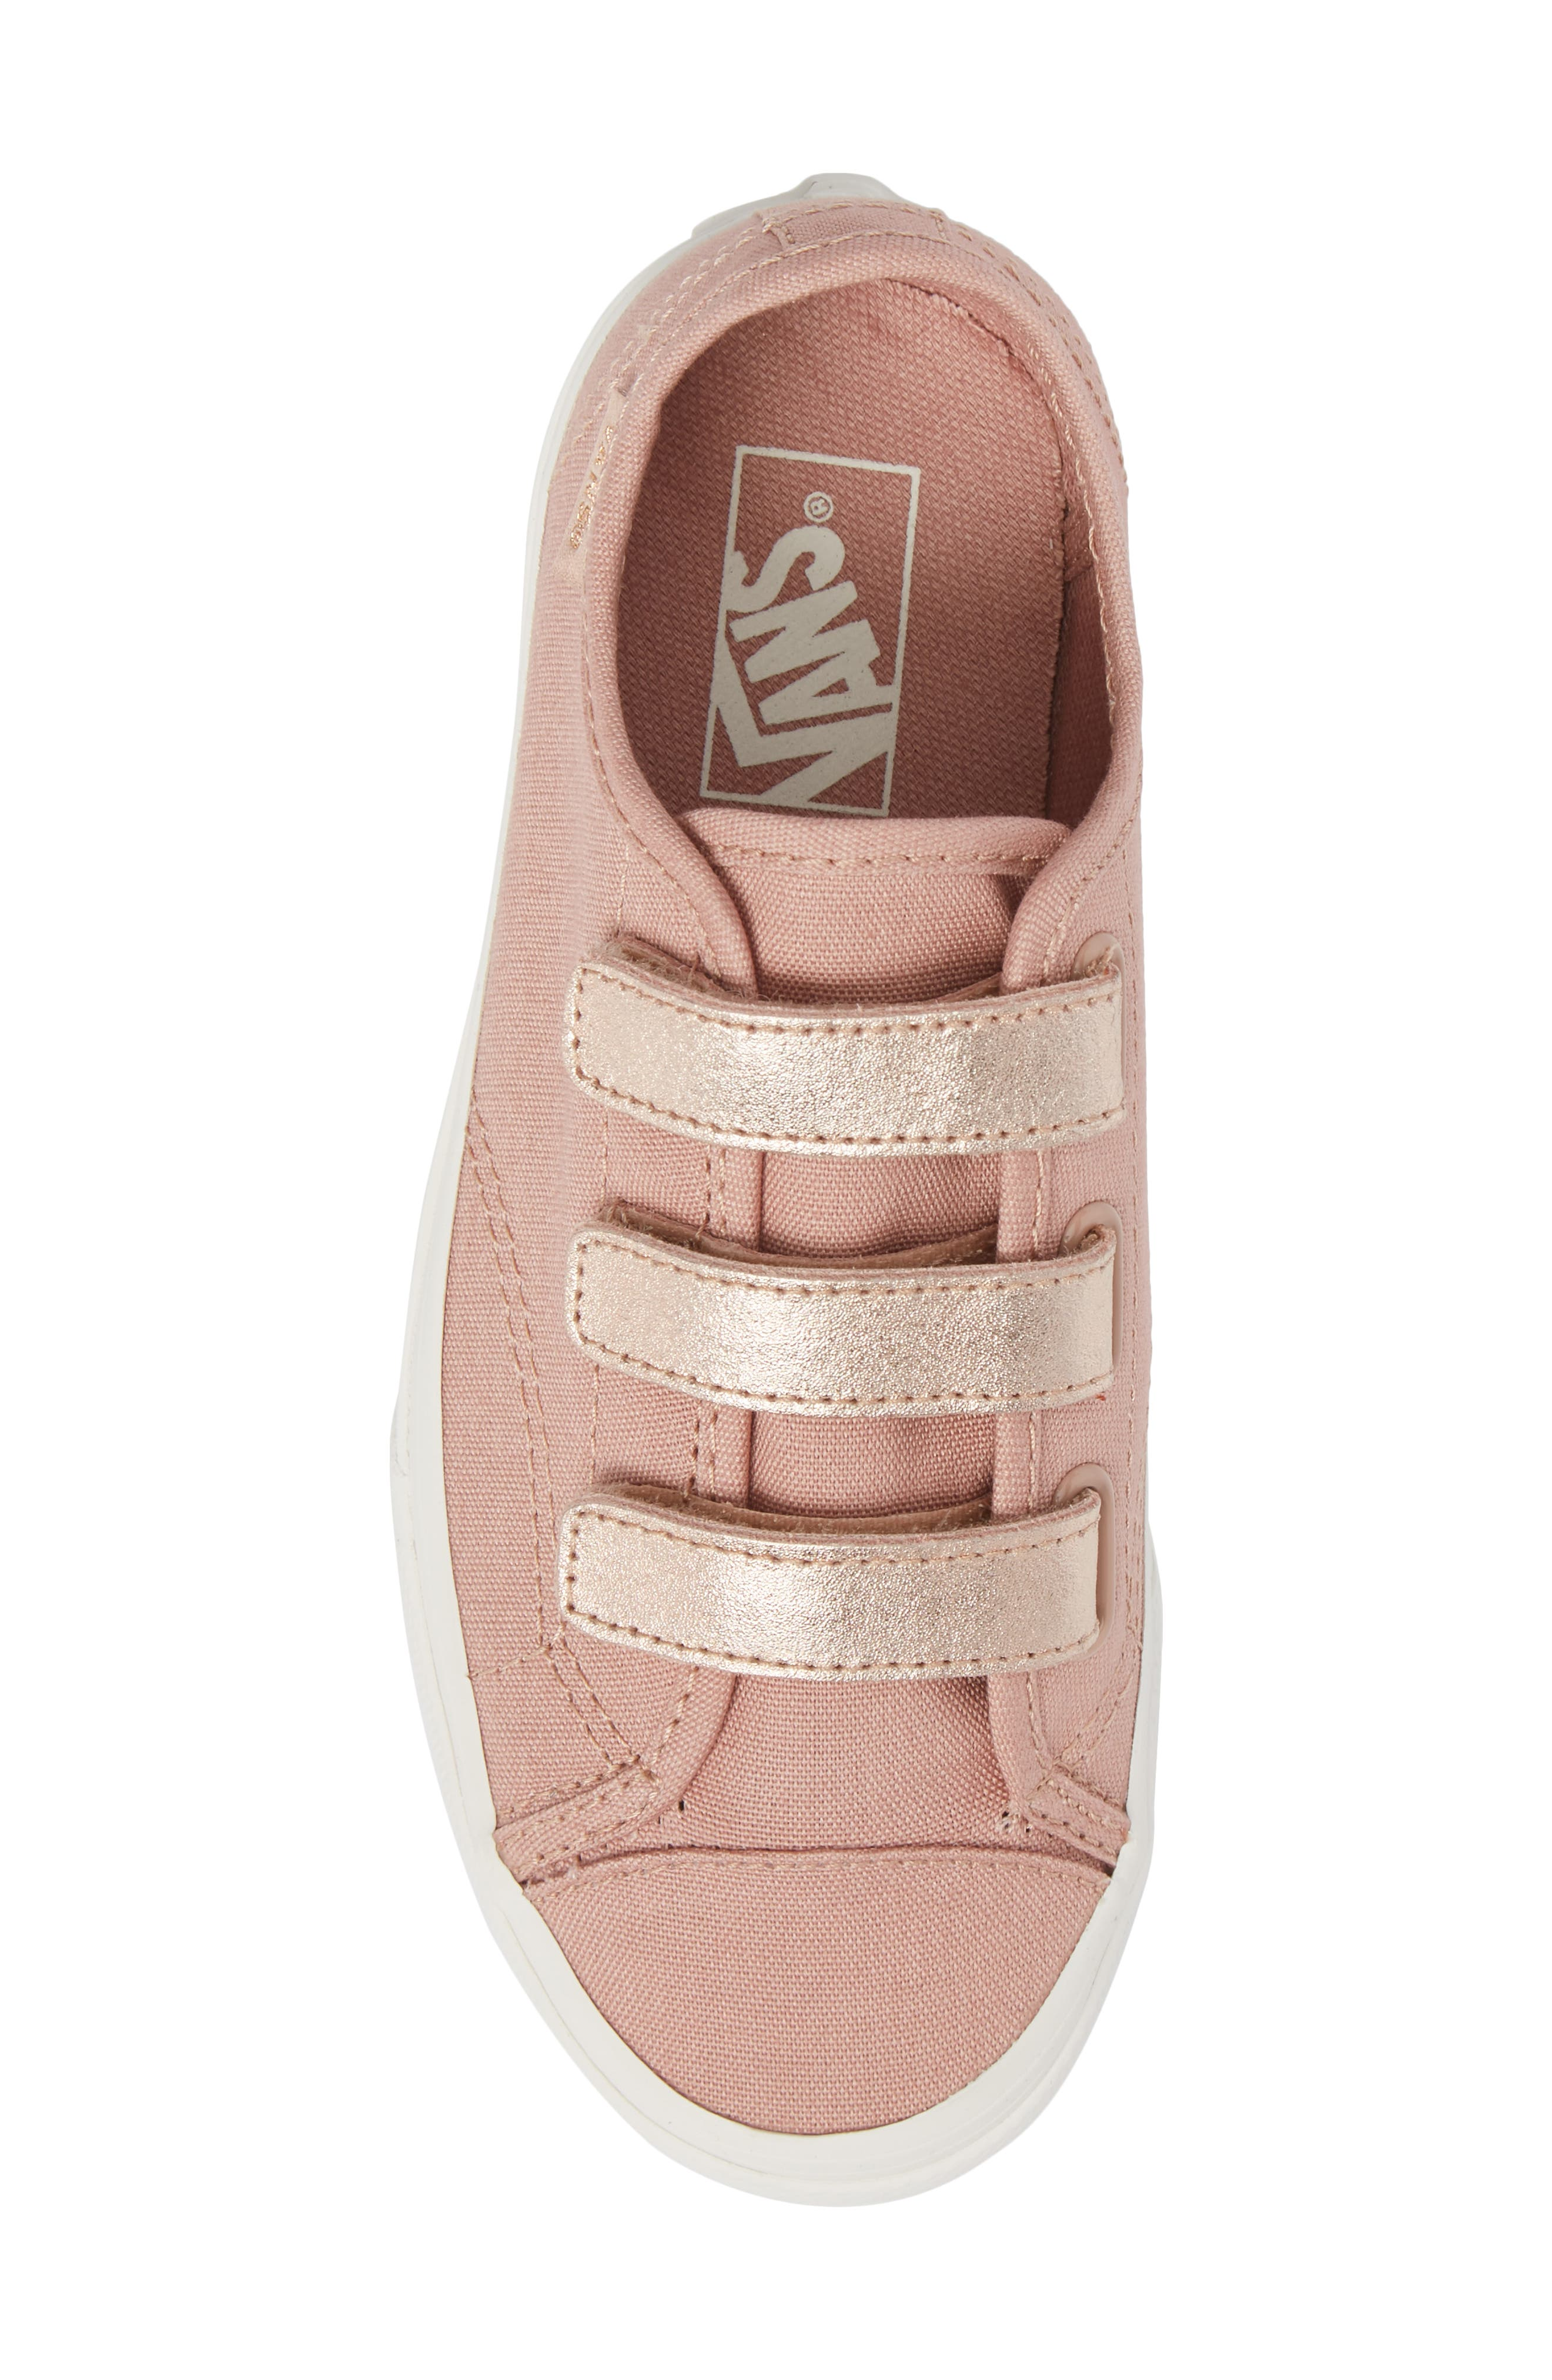 Style 23V Sneaker,                             Alternate thumbnail 5, color,                             Two-Tone Rose Gold Metallic